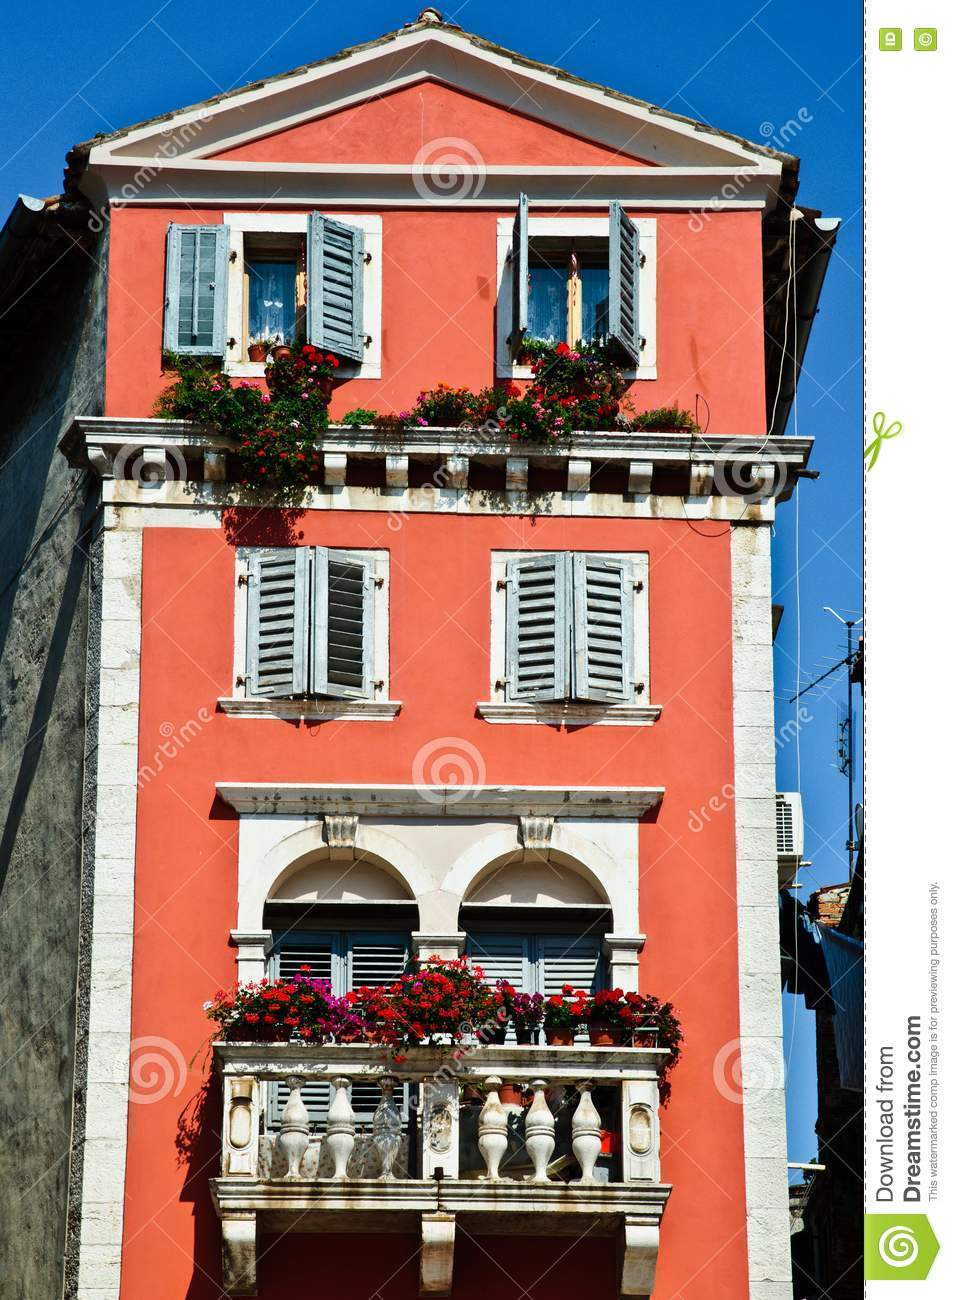 Tall Old European House With Red Walls Stock Photo